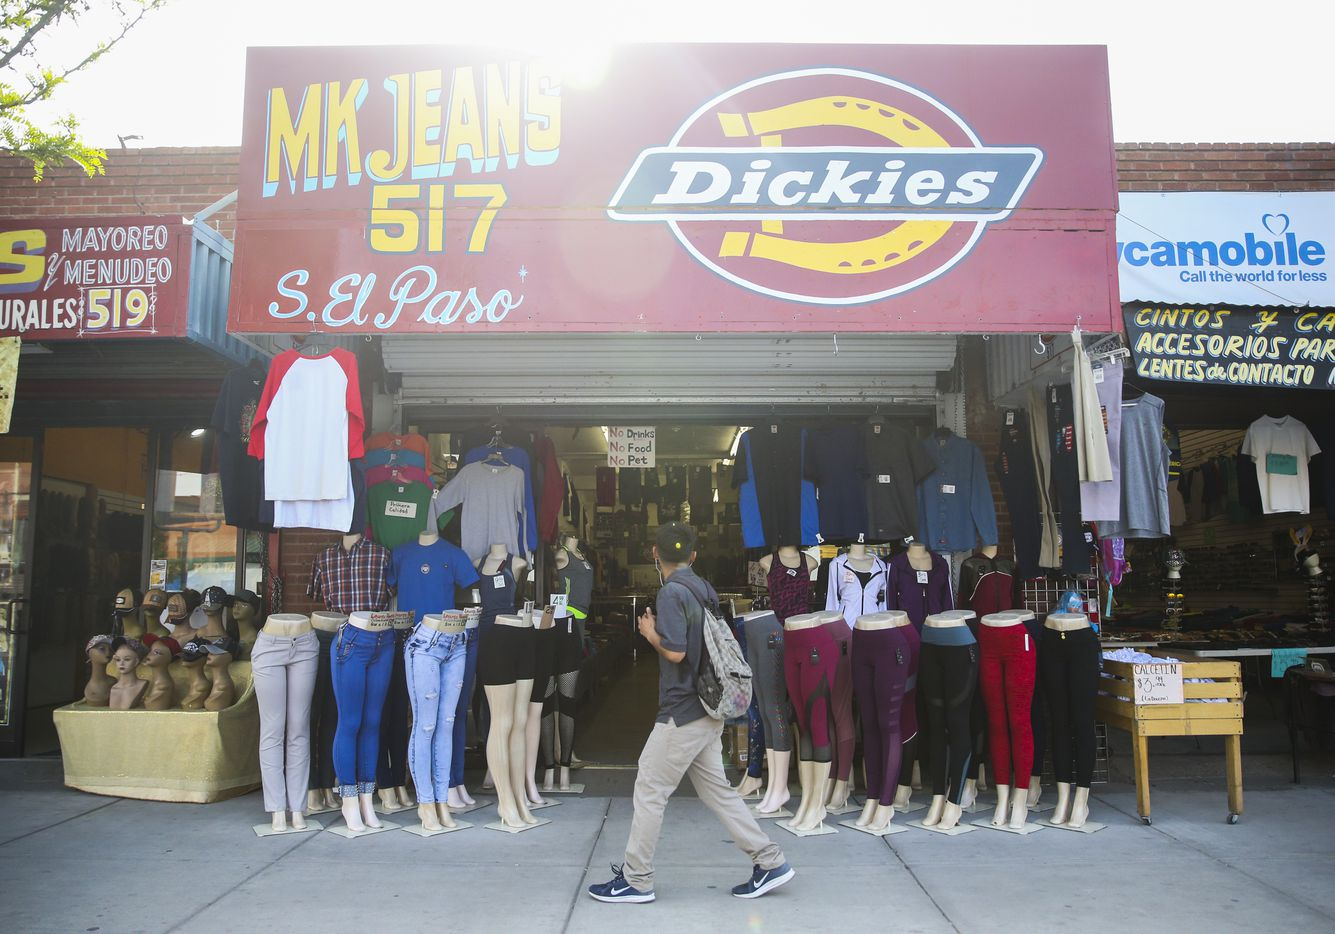 Shoppers pass by clothing stores along El Paso Street in downtown El Paso, Texas, on Monday, April 1, 2019.